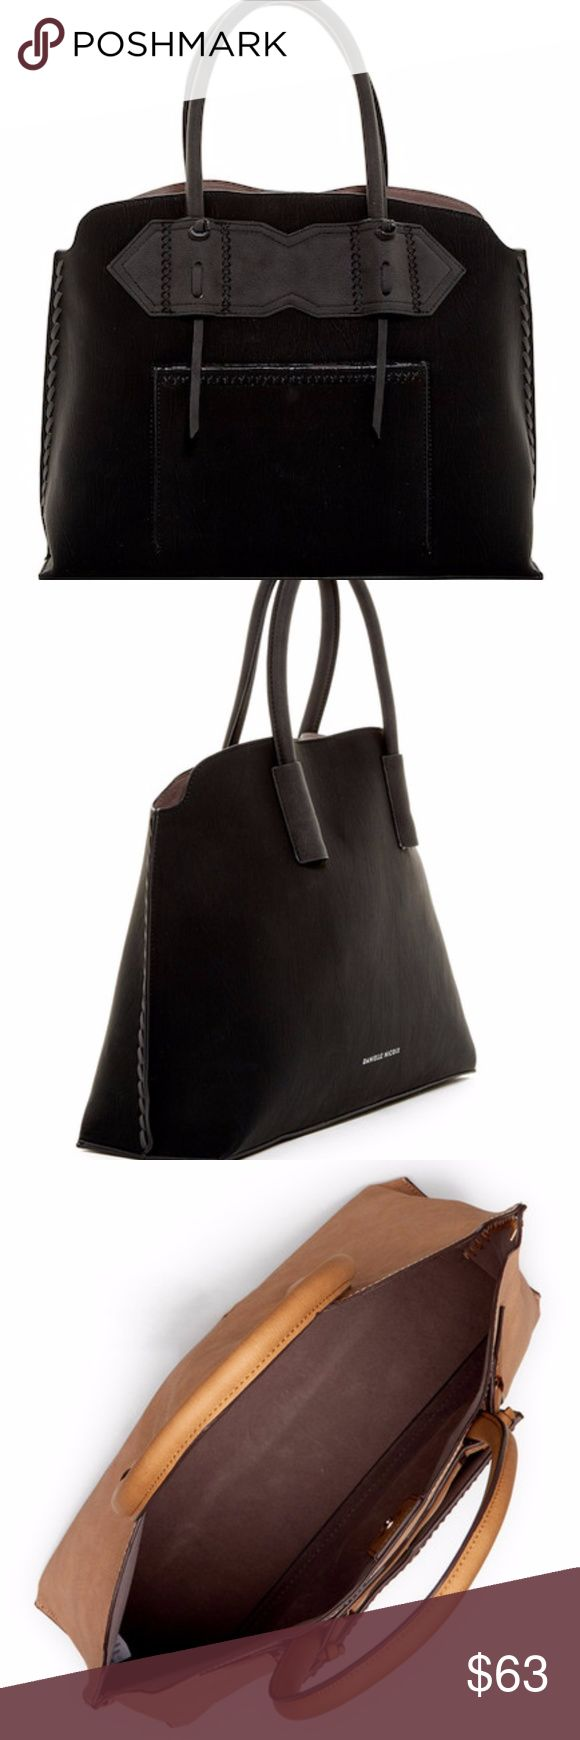 """NWT Danielle Nicole Collins Satchel in Black NWT Danielle Nicole Collins Satchel in Black - Dual rolled top handles - Magnetic top closure - Exterior features whipstitched detail and front gusseted pocket - Approx. 12"""" H x 17"""" W x 5"""" D - Approx. 6"""" handle drop Danielle Nicole Bags Satchels"""